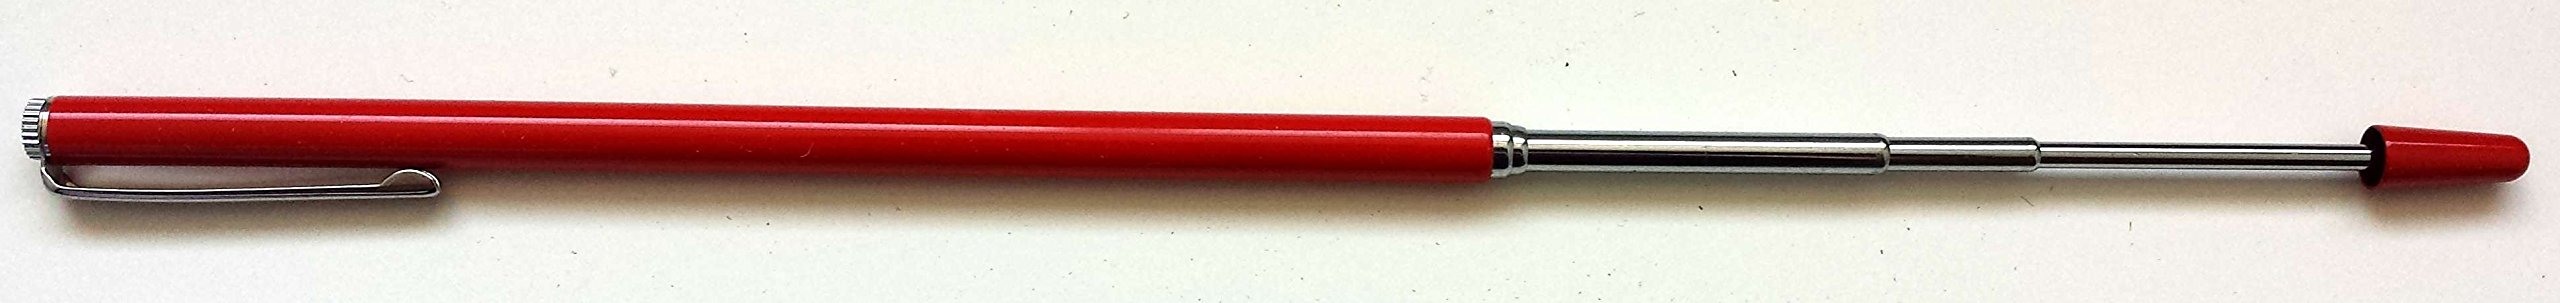 Metal Retractable/Telescoping Red Pointer, extends to approx. 35'', AA-778NO w/pocket clip for Educators/Therapists.